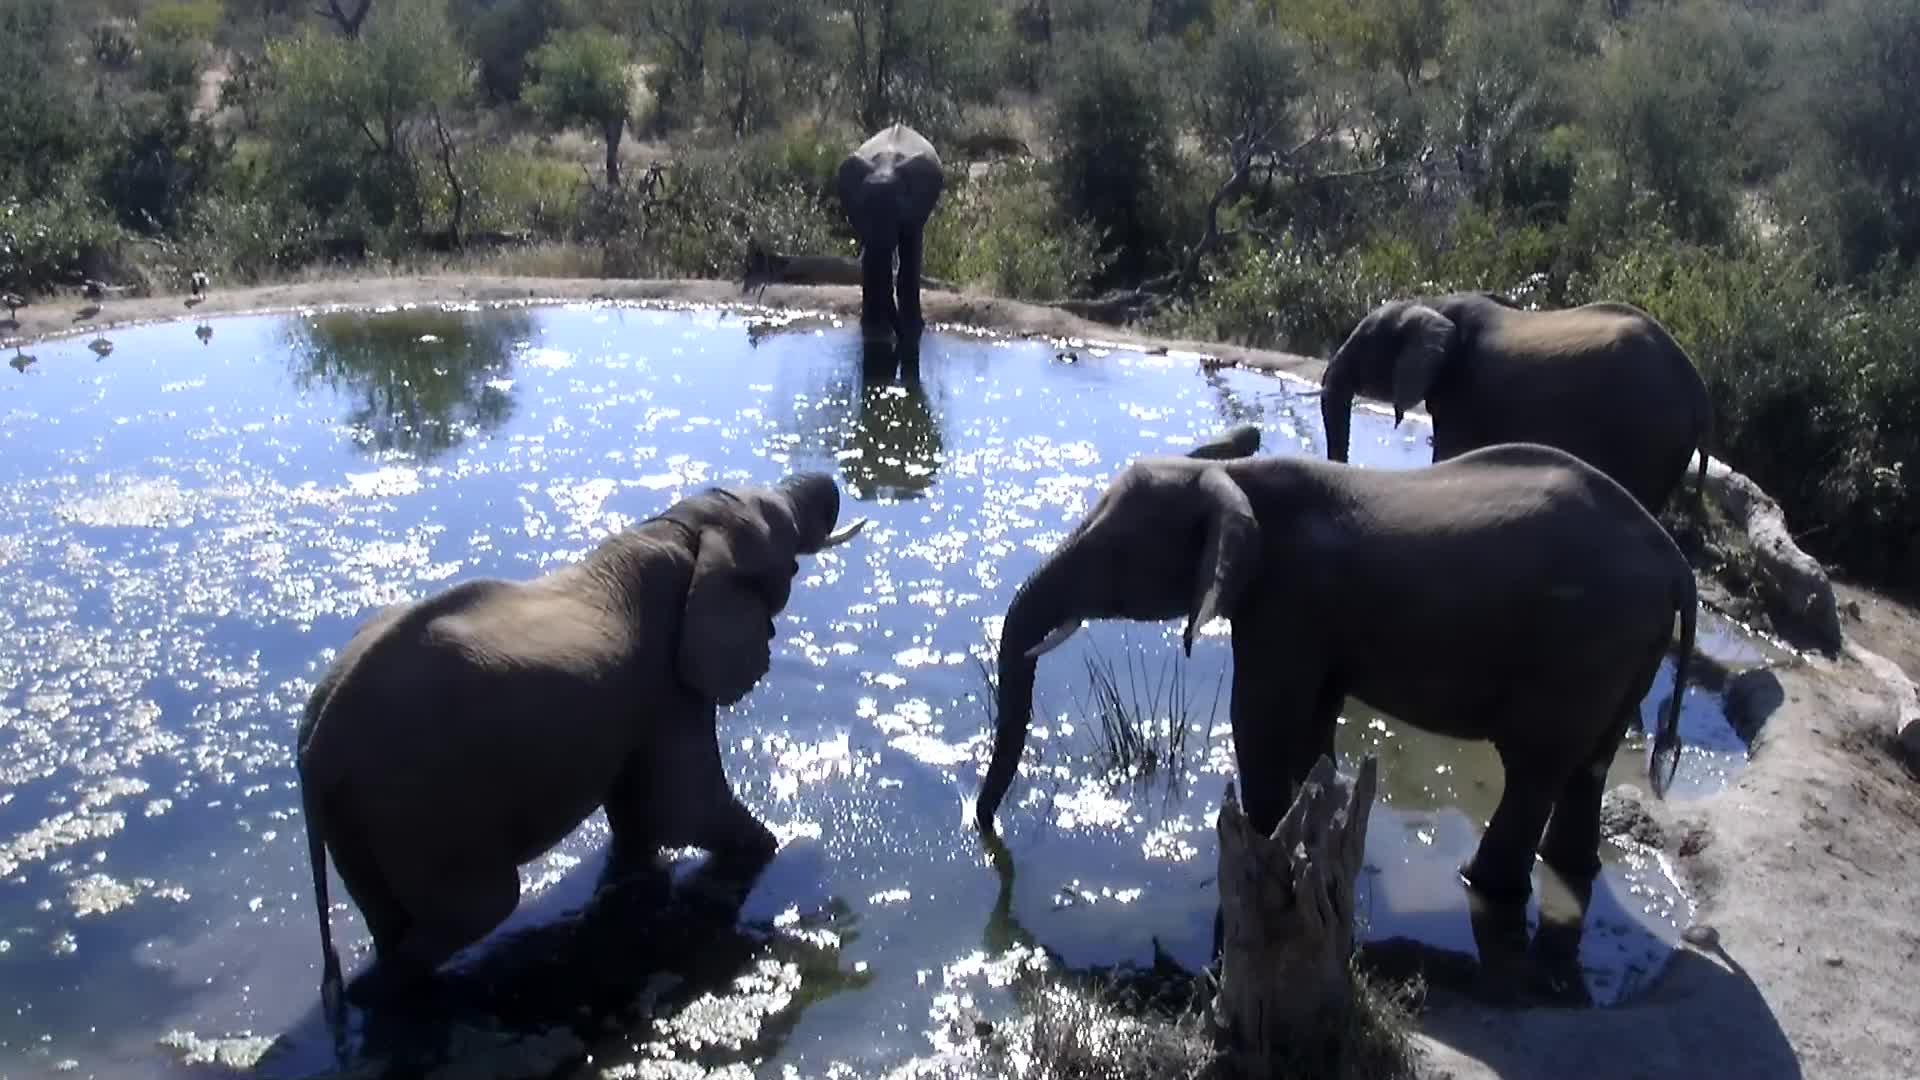 VIDEO: A small herd of Elephants having a drink.